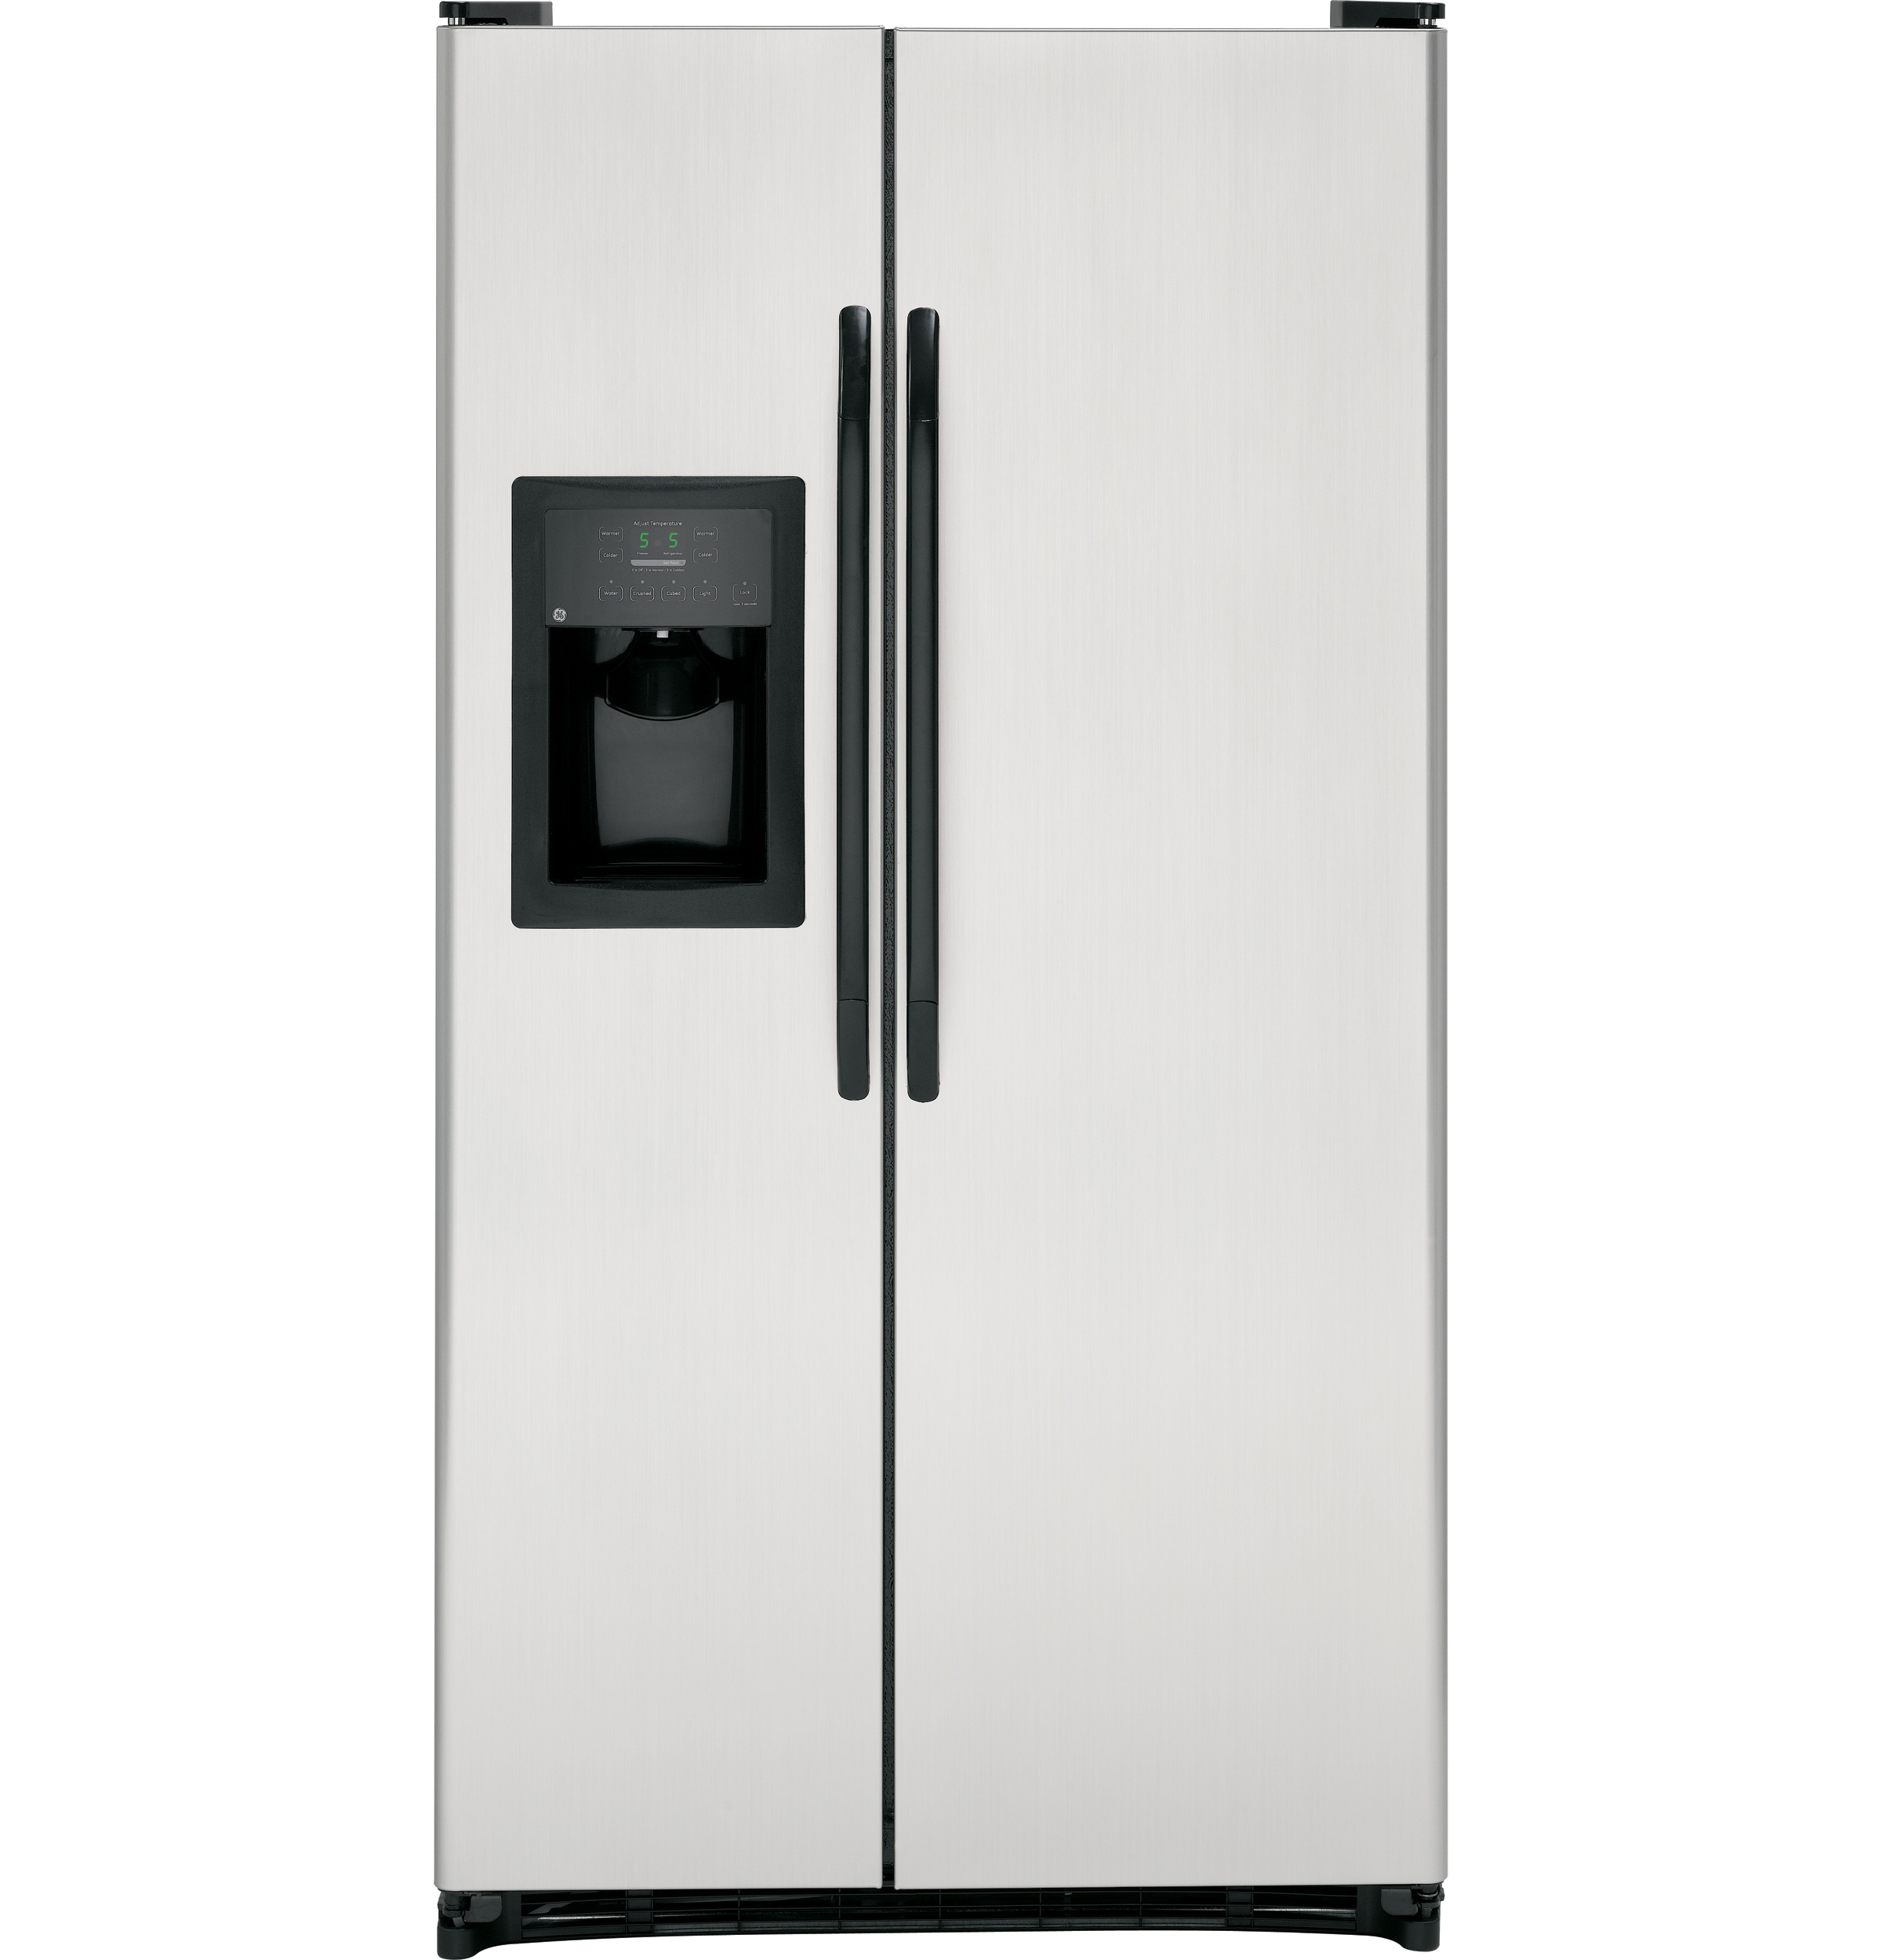 Ge Energy Star 253 Cu Ft Side By Refrigerator With Relay Switch In Refrigerators Product Image